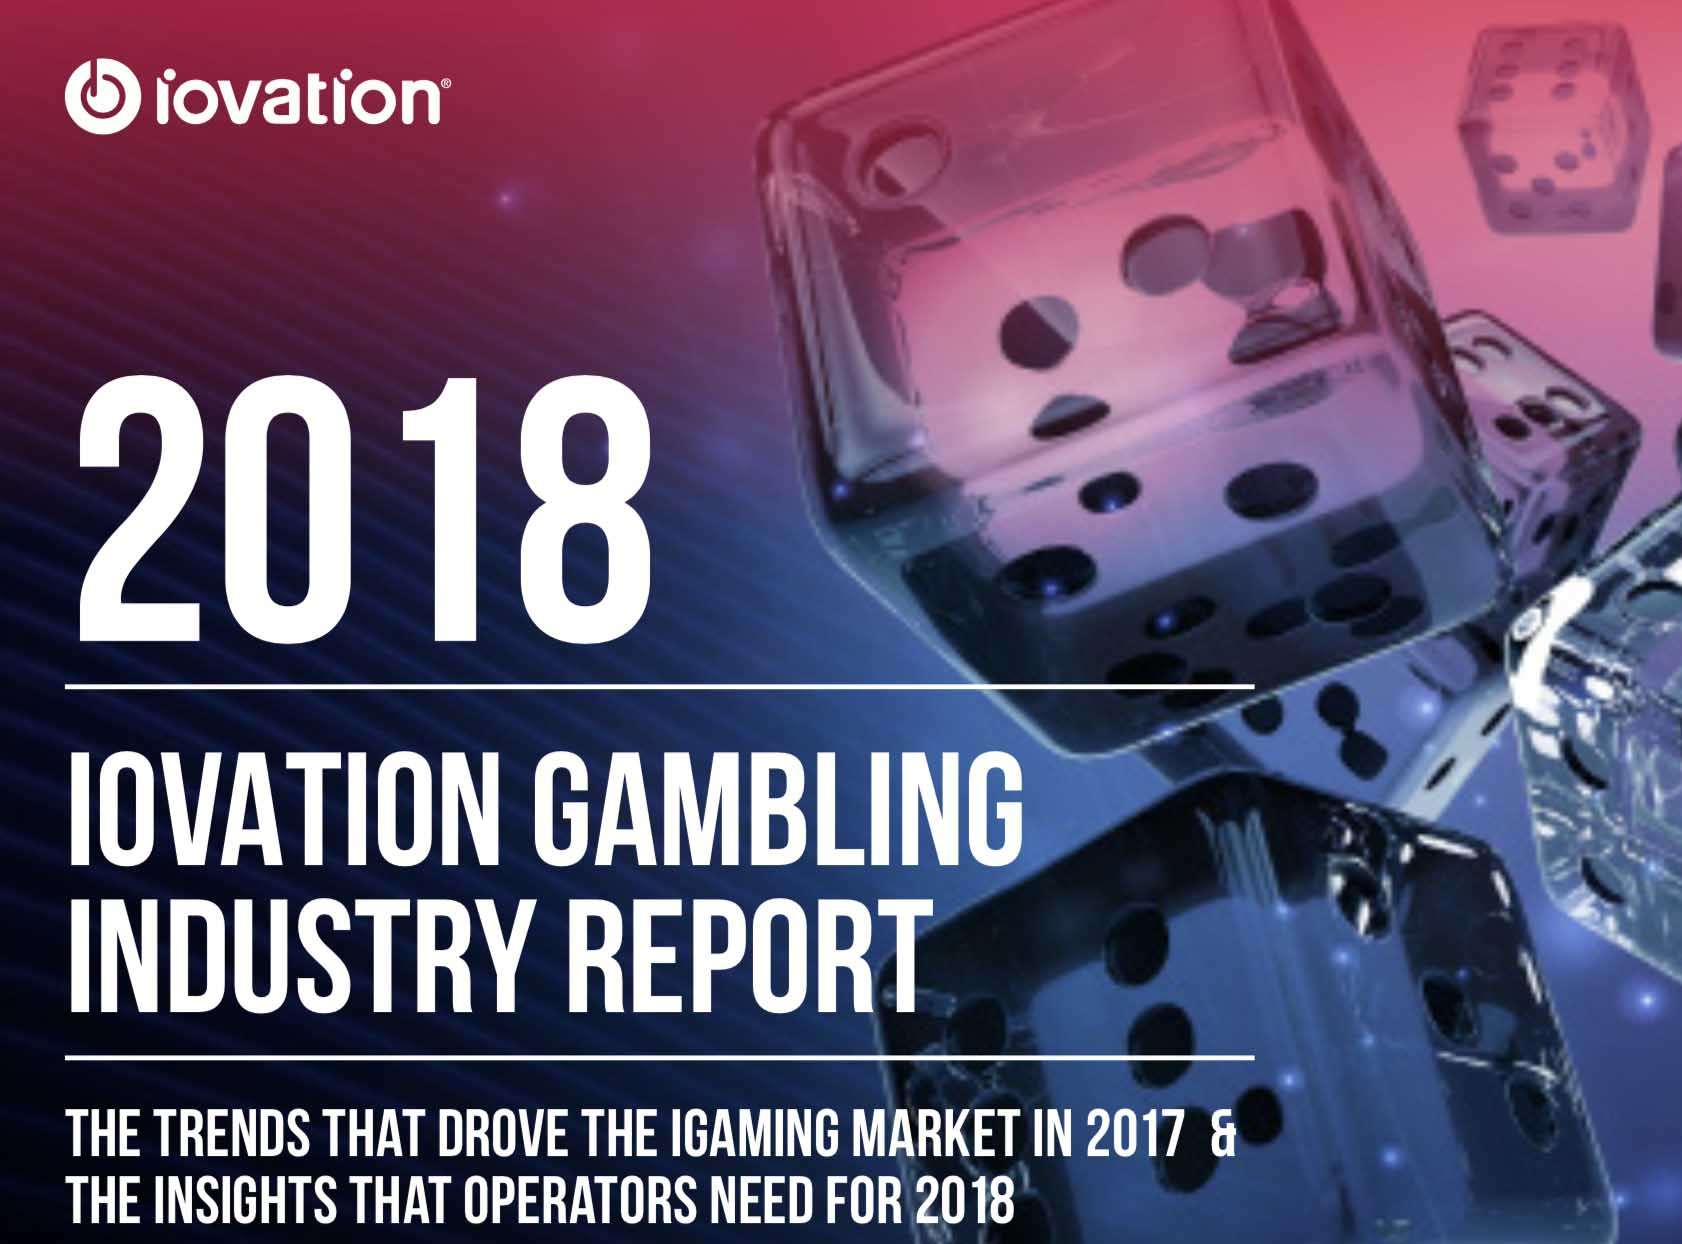 iovation - INDUSTRY REPORT